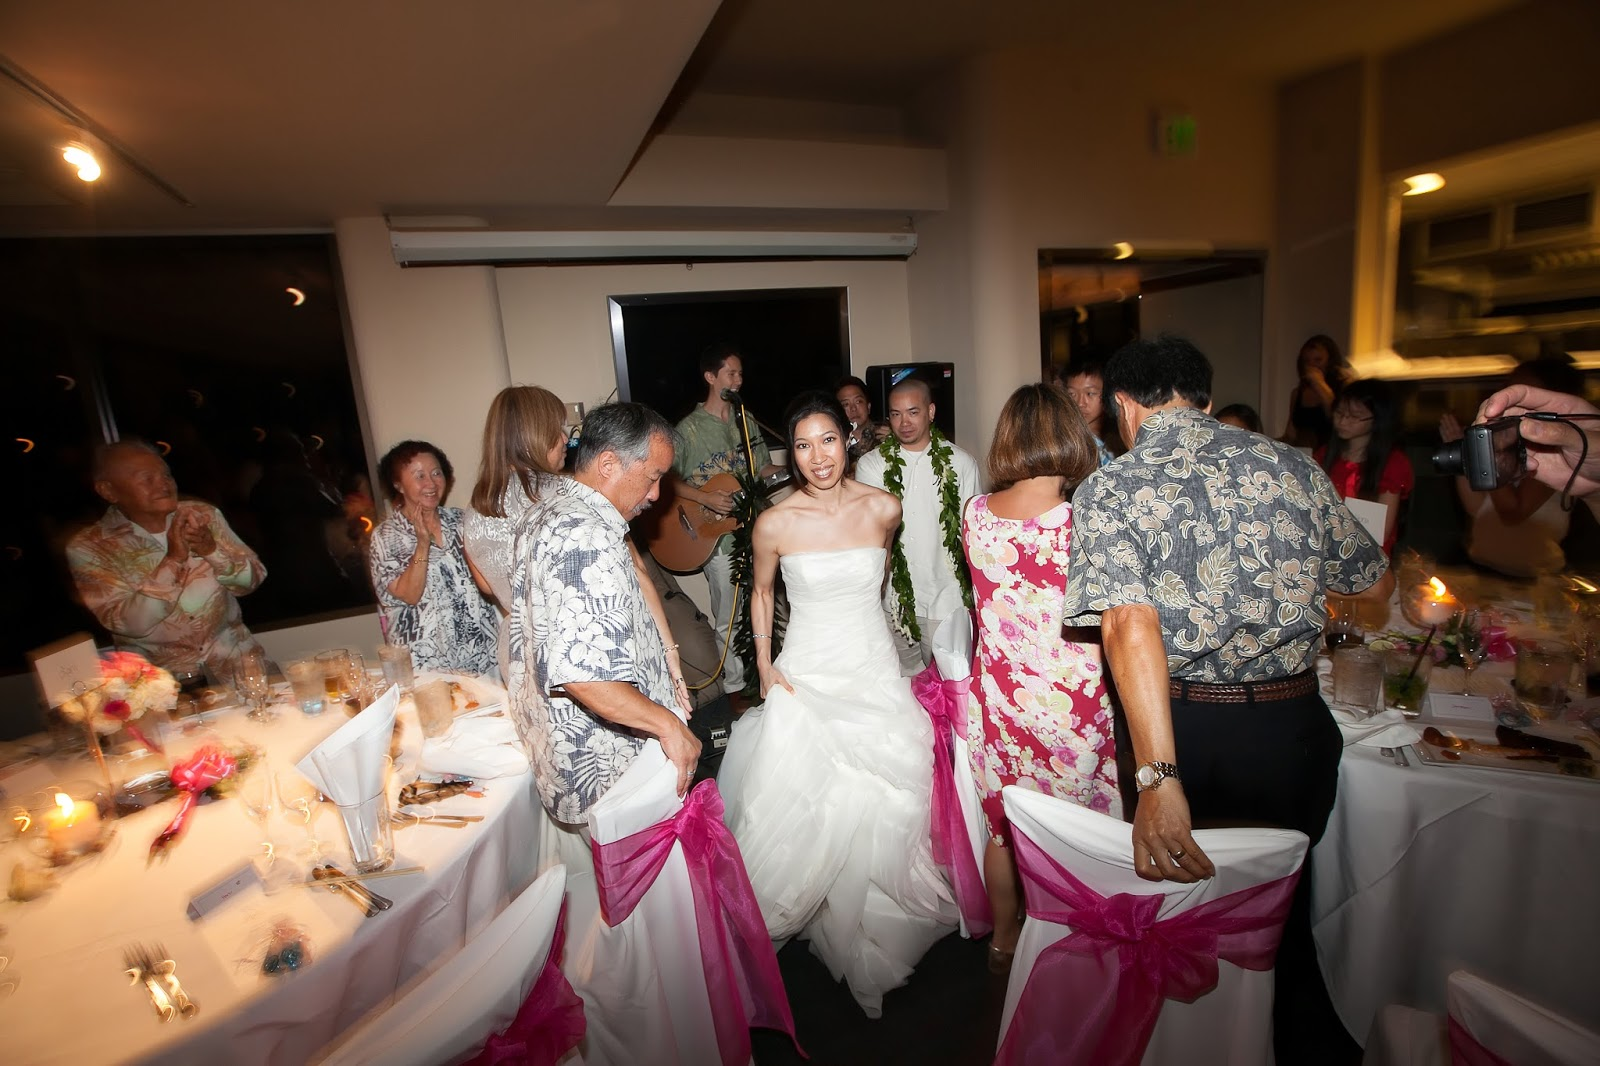 Chair Cover Express Hawaii Rush Seat Repair Kit Let 39s Do This Event And Wedding Planning Secret Island